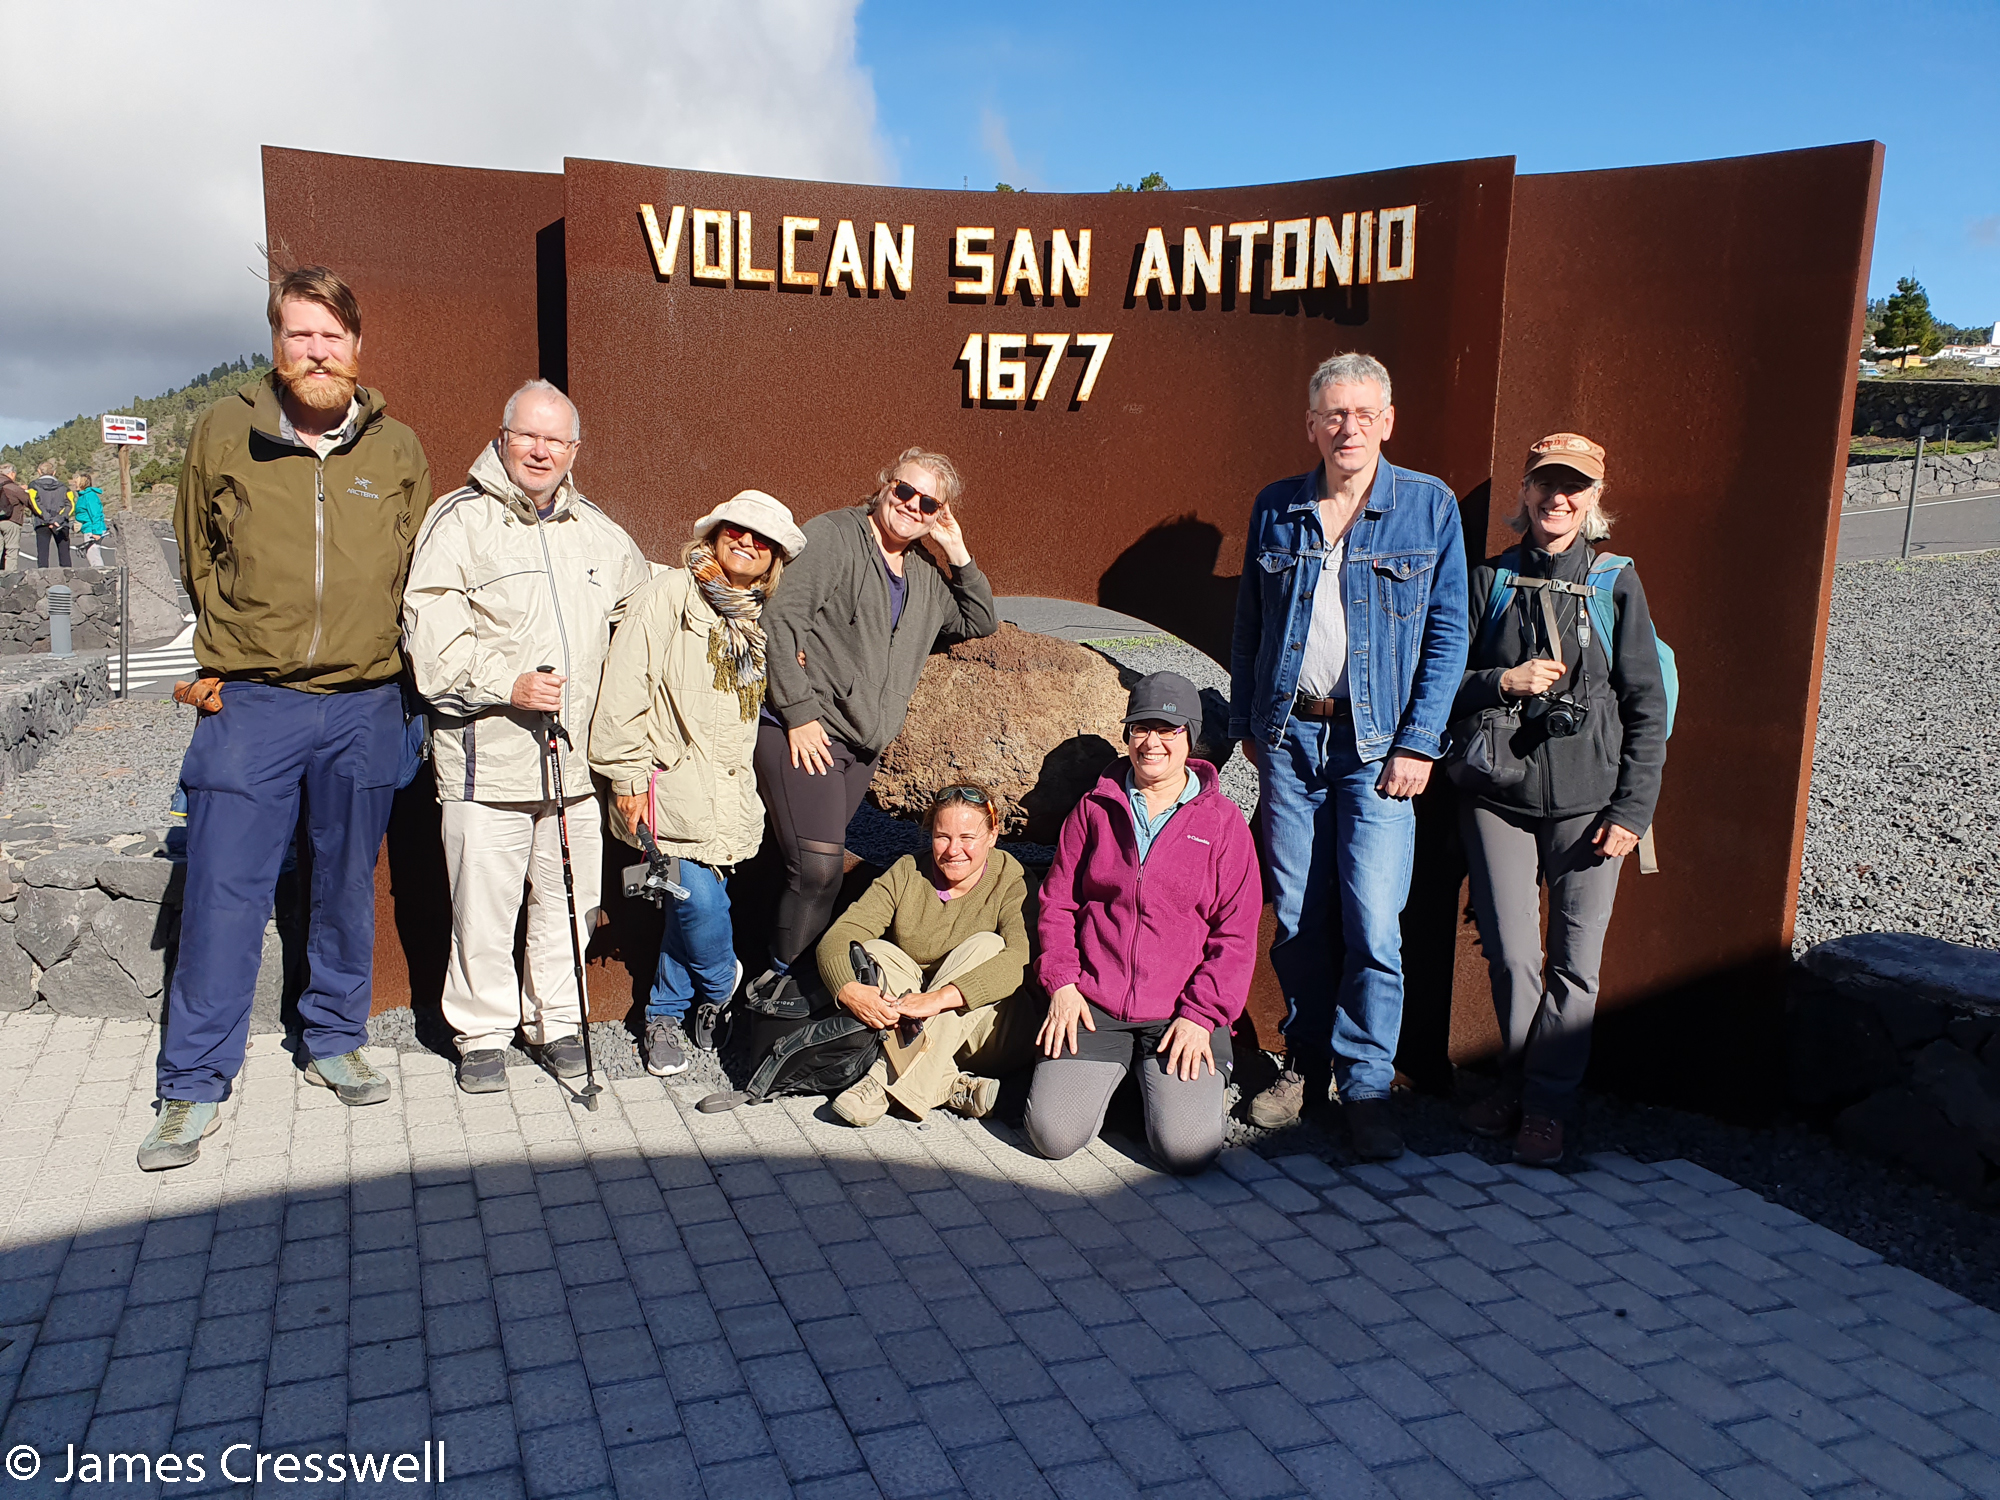 Group of people standing in front of metal sign